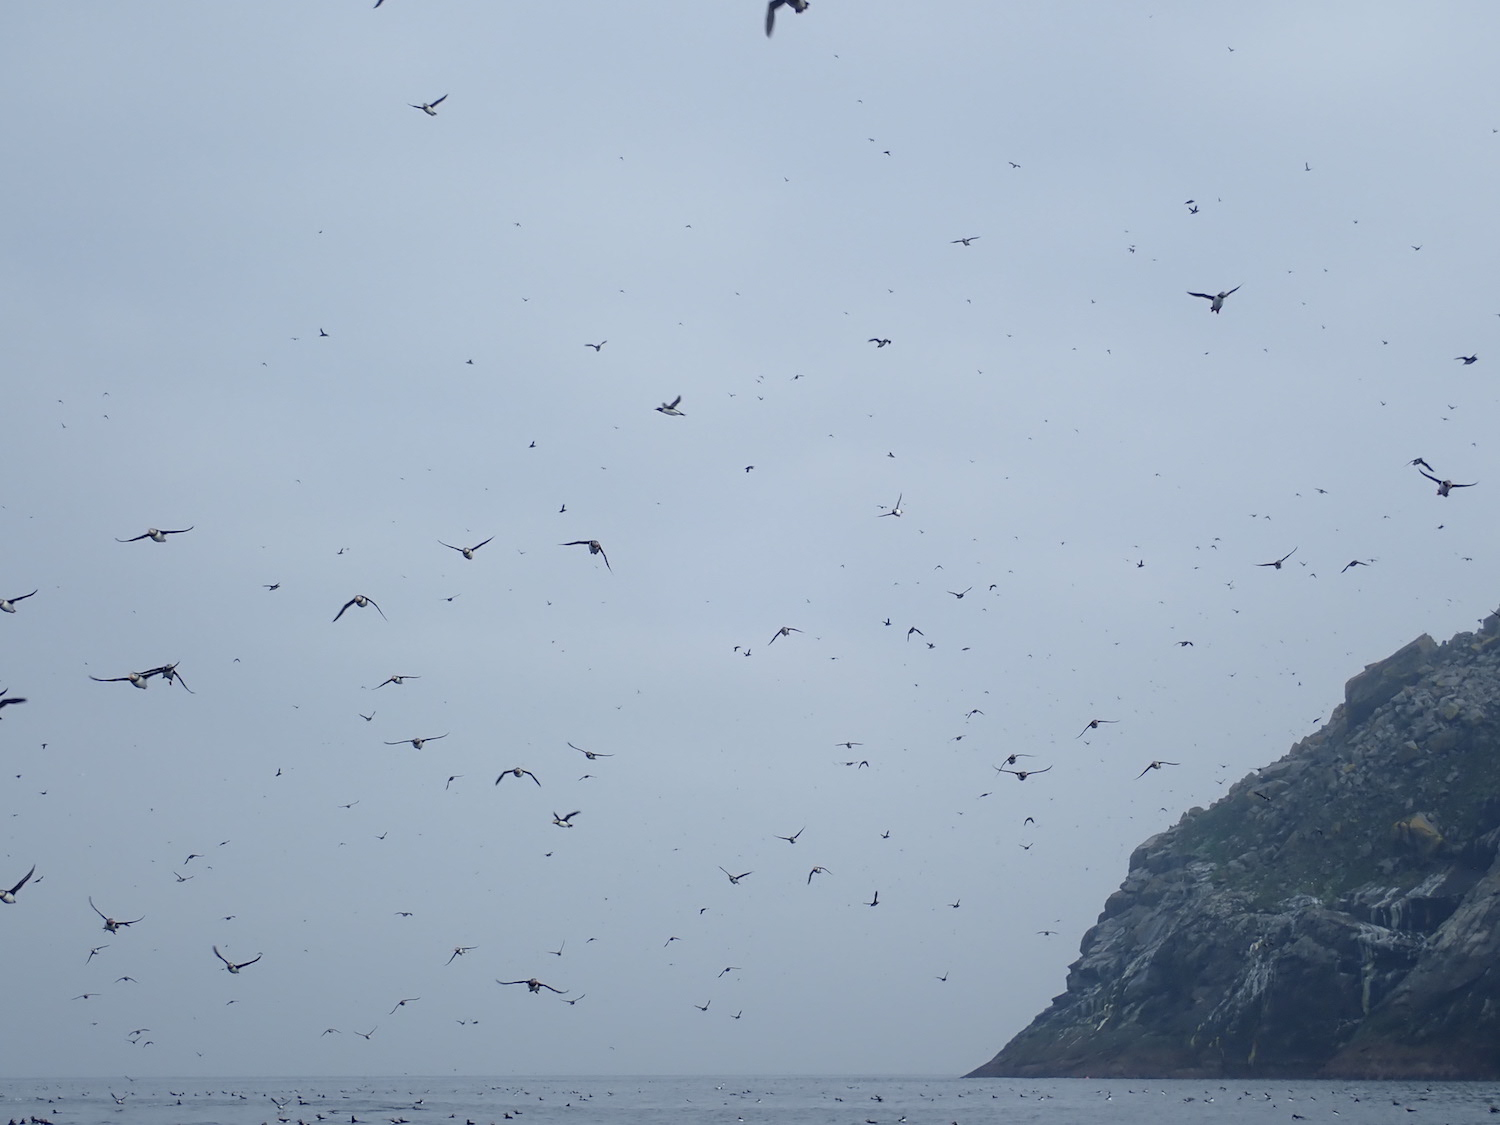 Puffins galore!